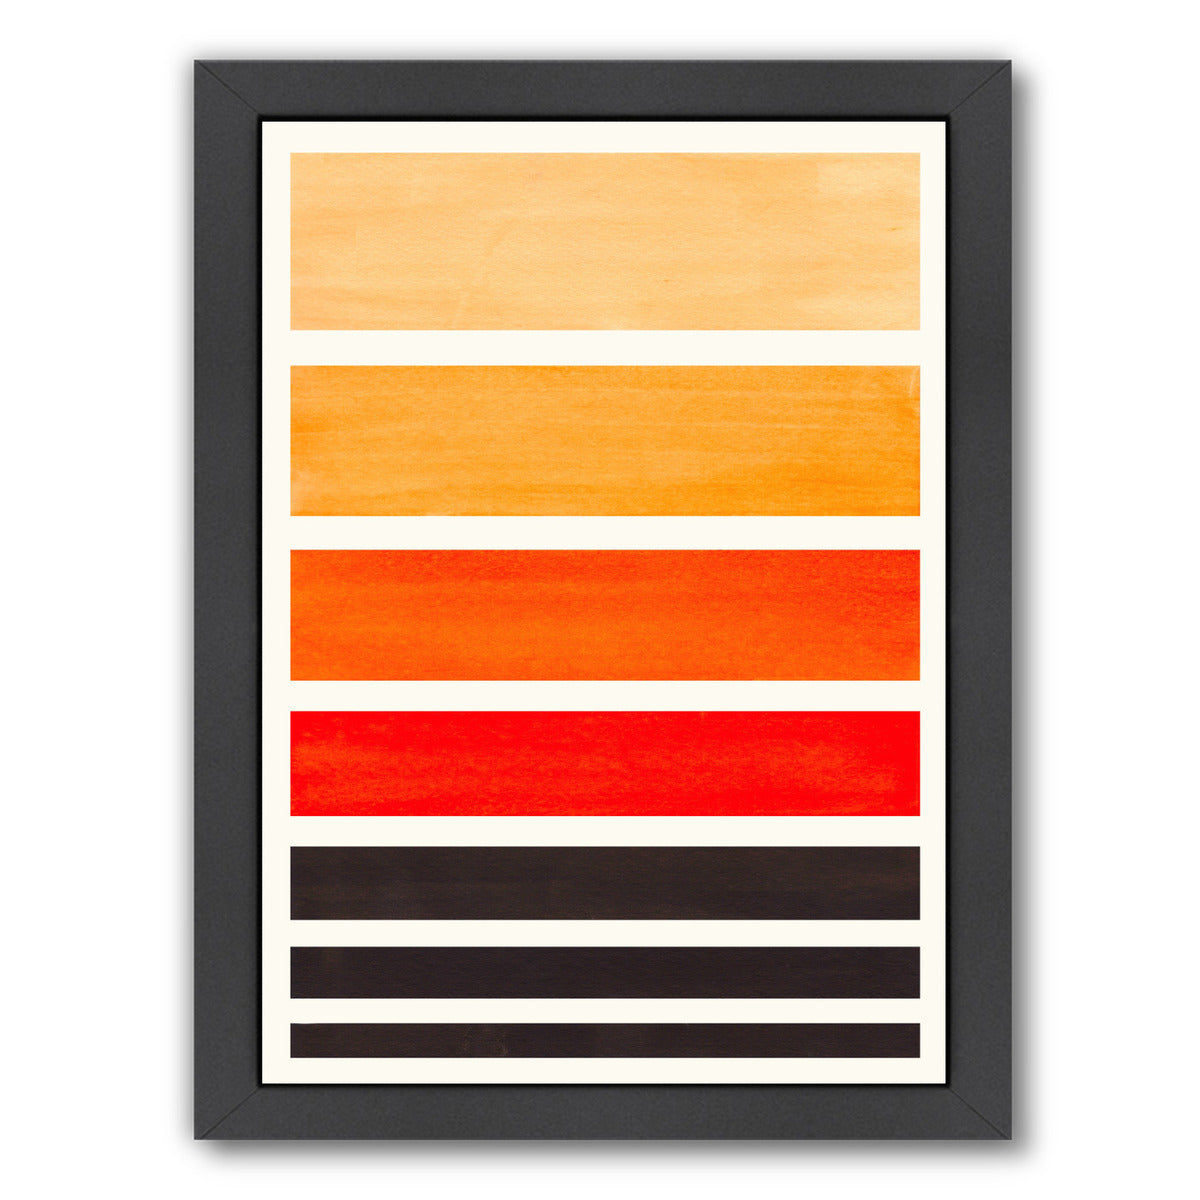 Orange Staggered Stripes By Ejaaz Haniff - Black Framed Print - Wall Art - Americanflat